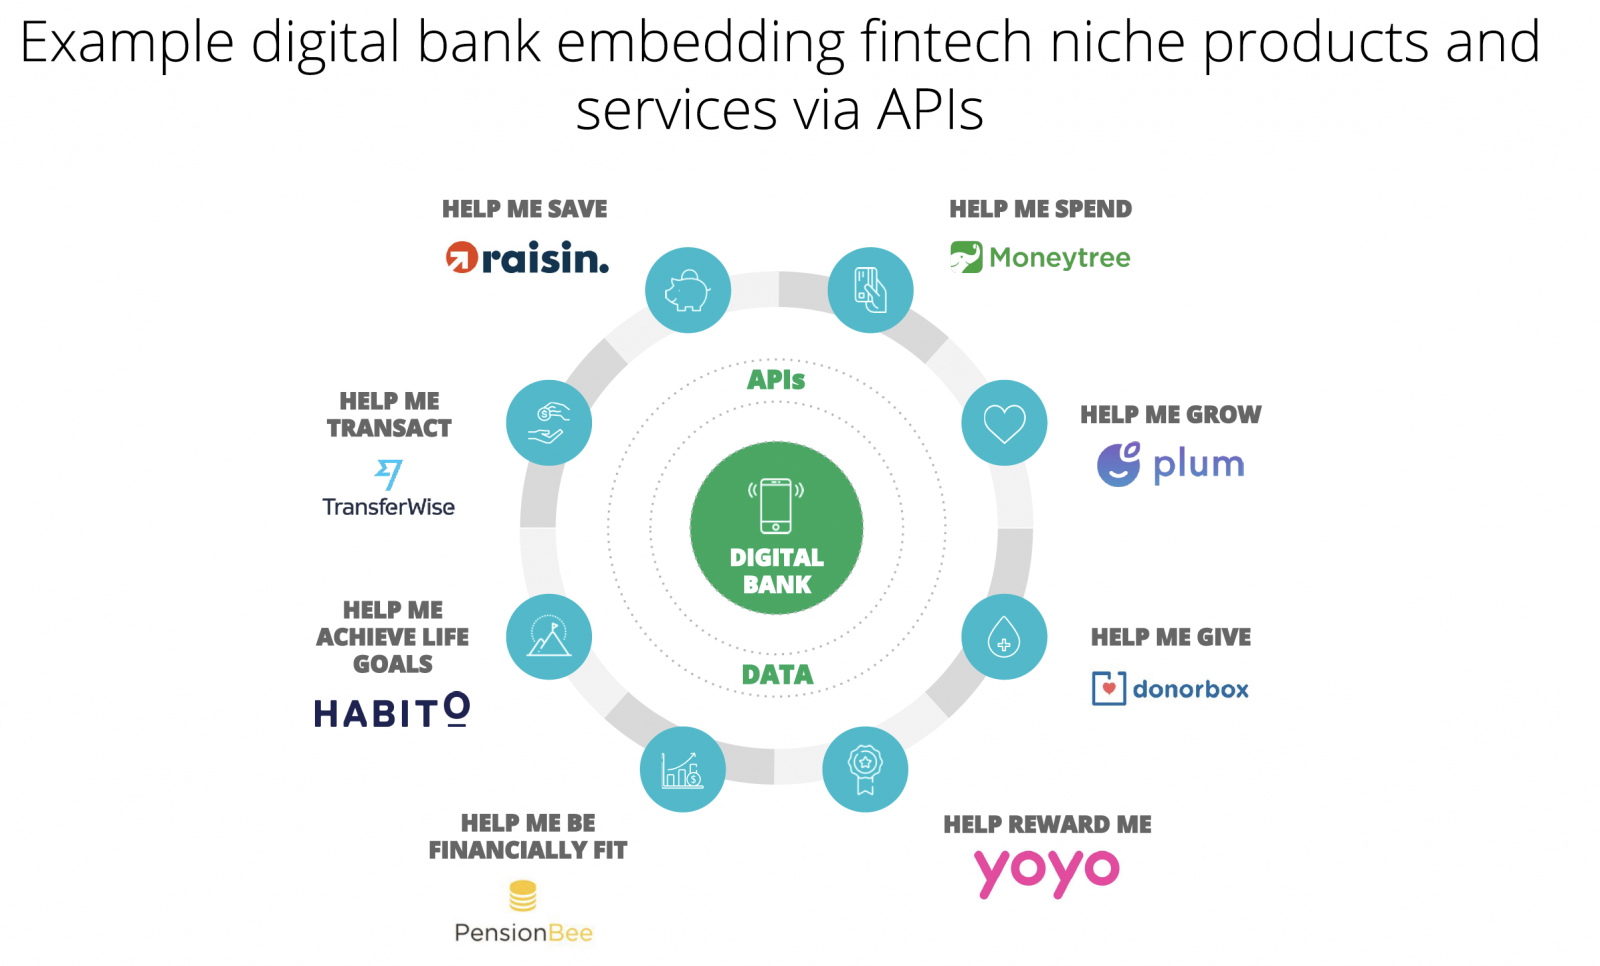 Example of digital bank embedding financial niche products and services via APIs